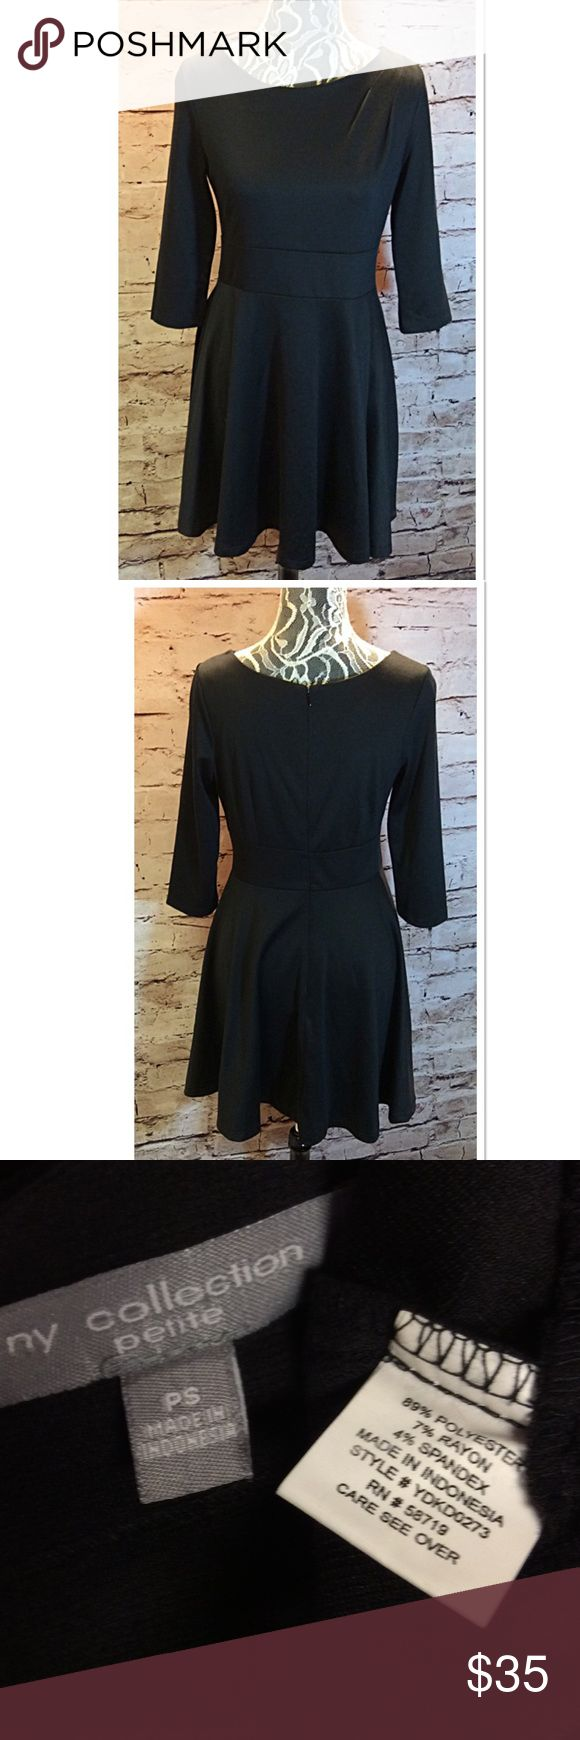 NY COLLECTION PETITE BLACK DRESS Beautiful little black dress with 3/4 sleeves in gently used condition NY Collection Dresses